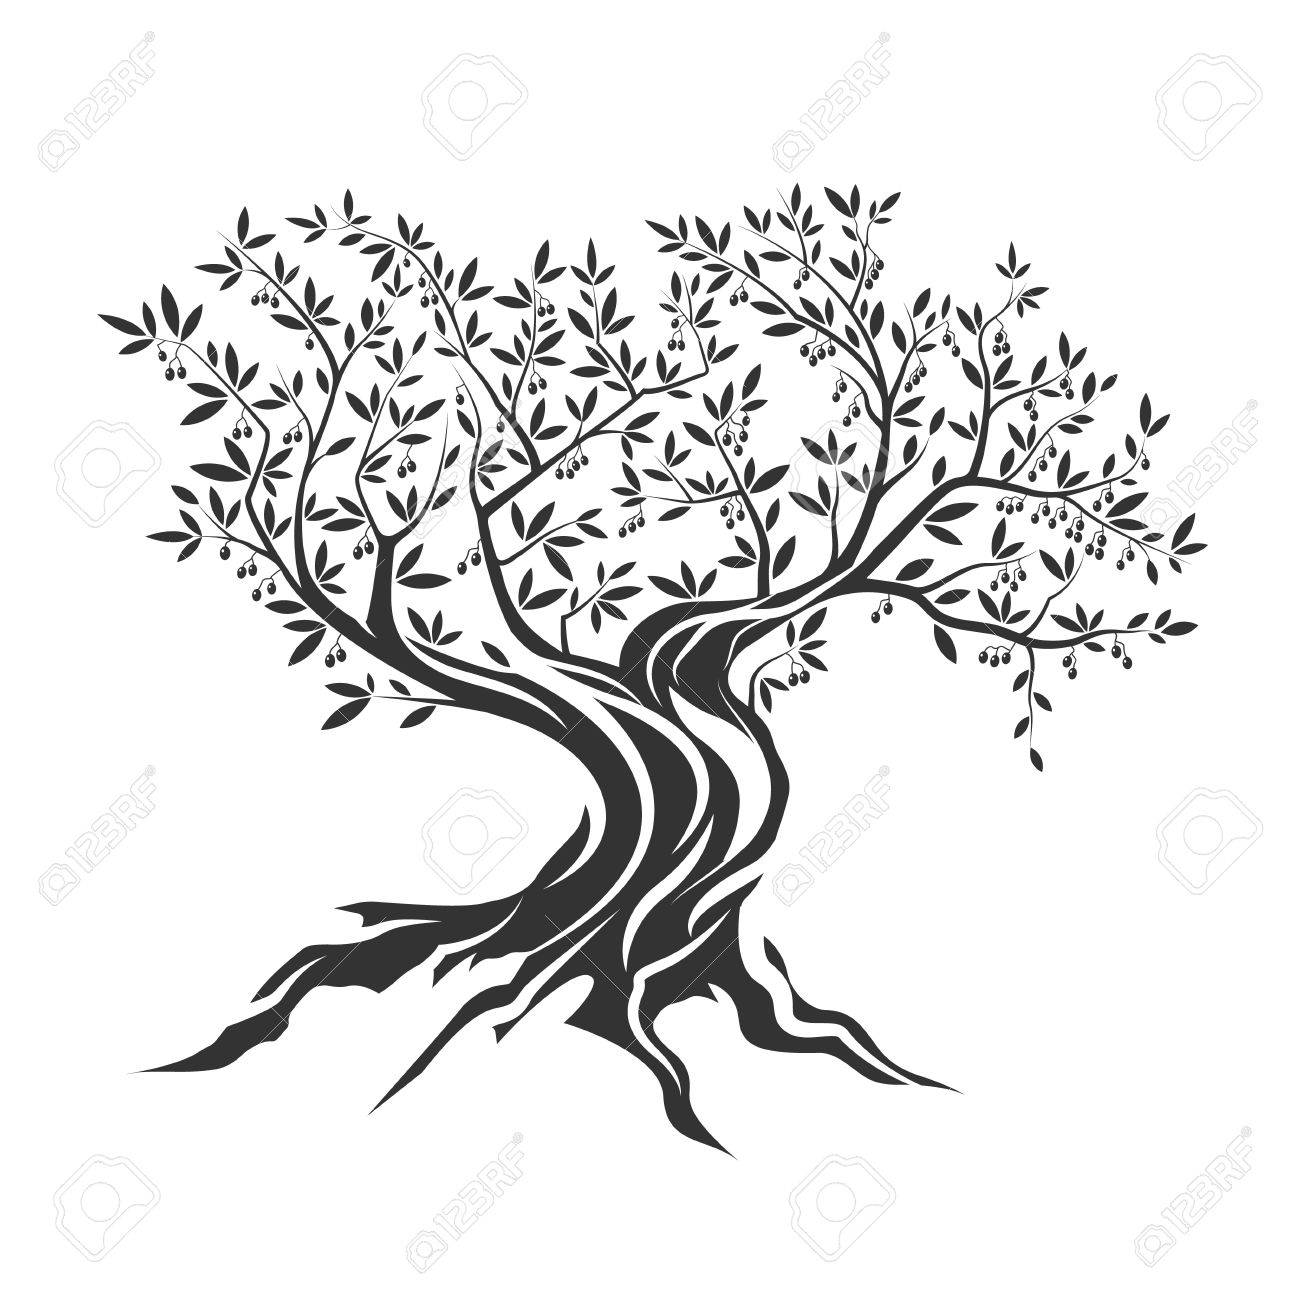 Olive tree silhouette icon isolated on white background. - 63275346